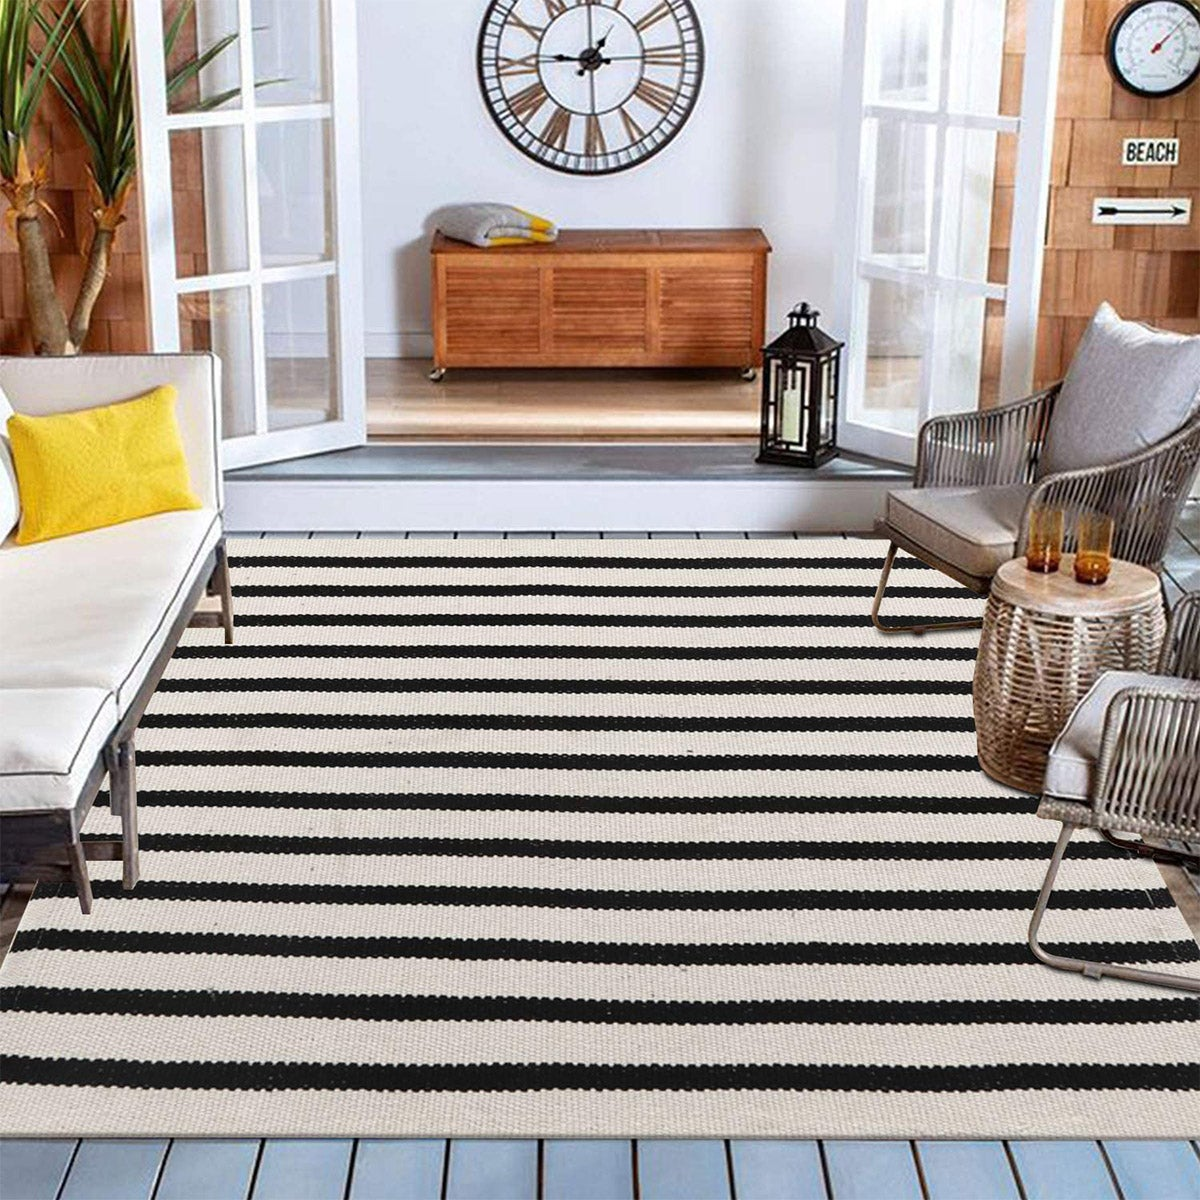 Best Outdoor Rug Option: Collive Farmhouse Cotton Woven Area Rug